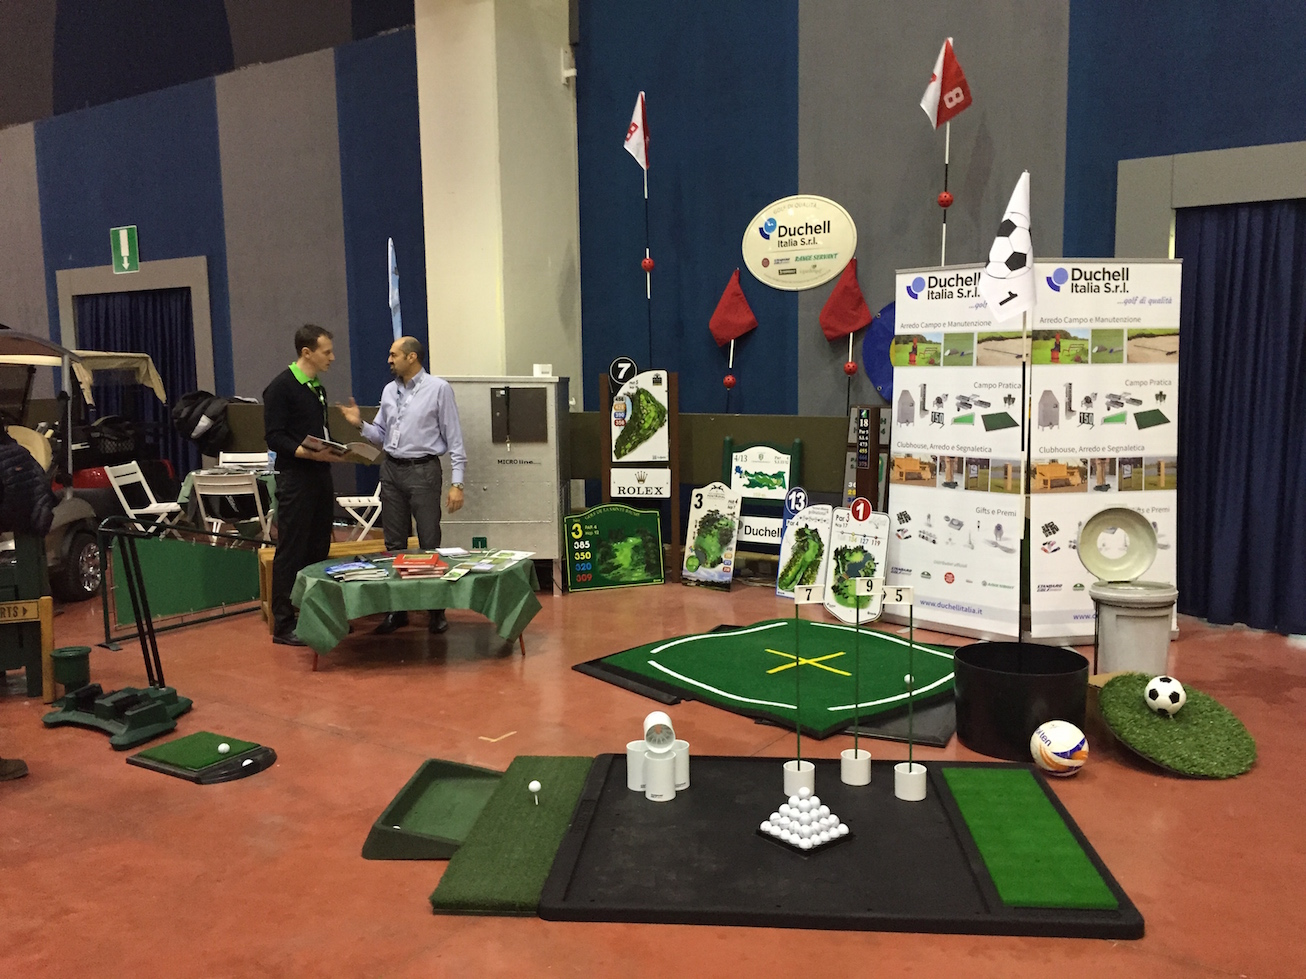 Fiera del Golf Parma 2015 le foto ed i video di Italian Golf Show e le prove dei materiali43 - Fiera del Golf Parma: le foto ed i video di Italian Golf Show